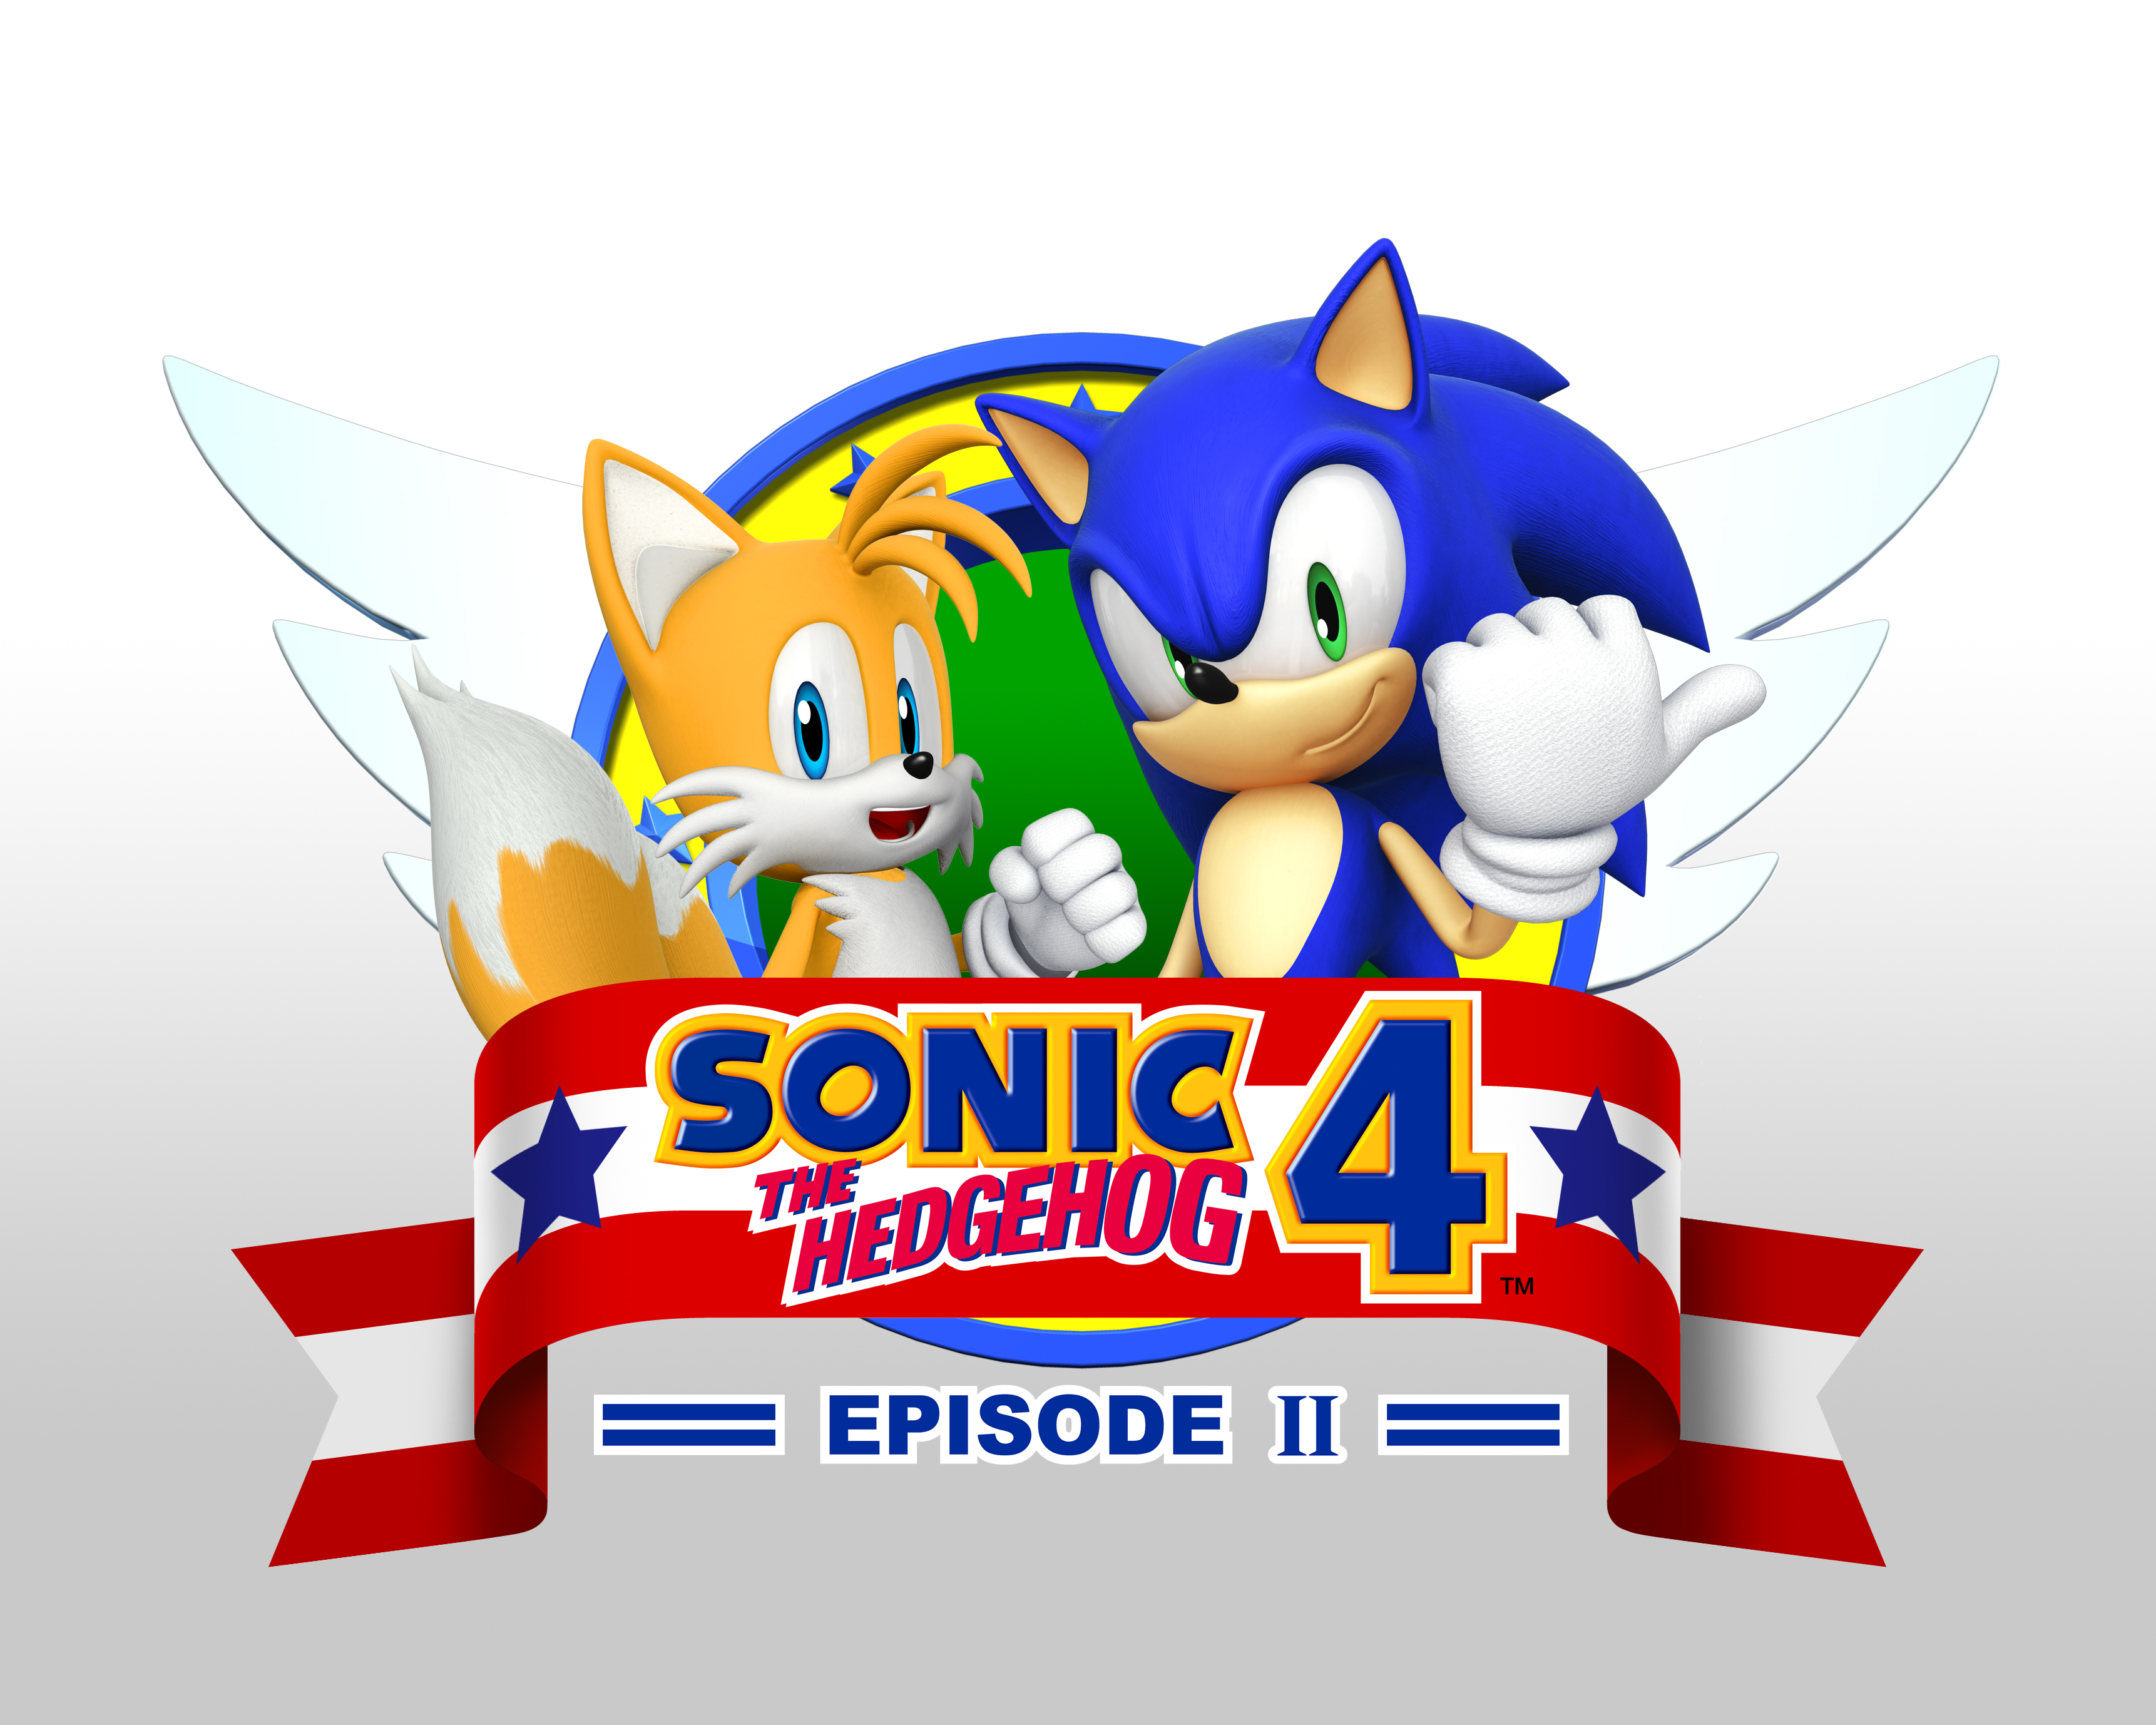 Sonic 4: Tails Could Lead in Future Patch, Ep 2 Dates Clarified